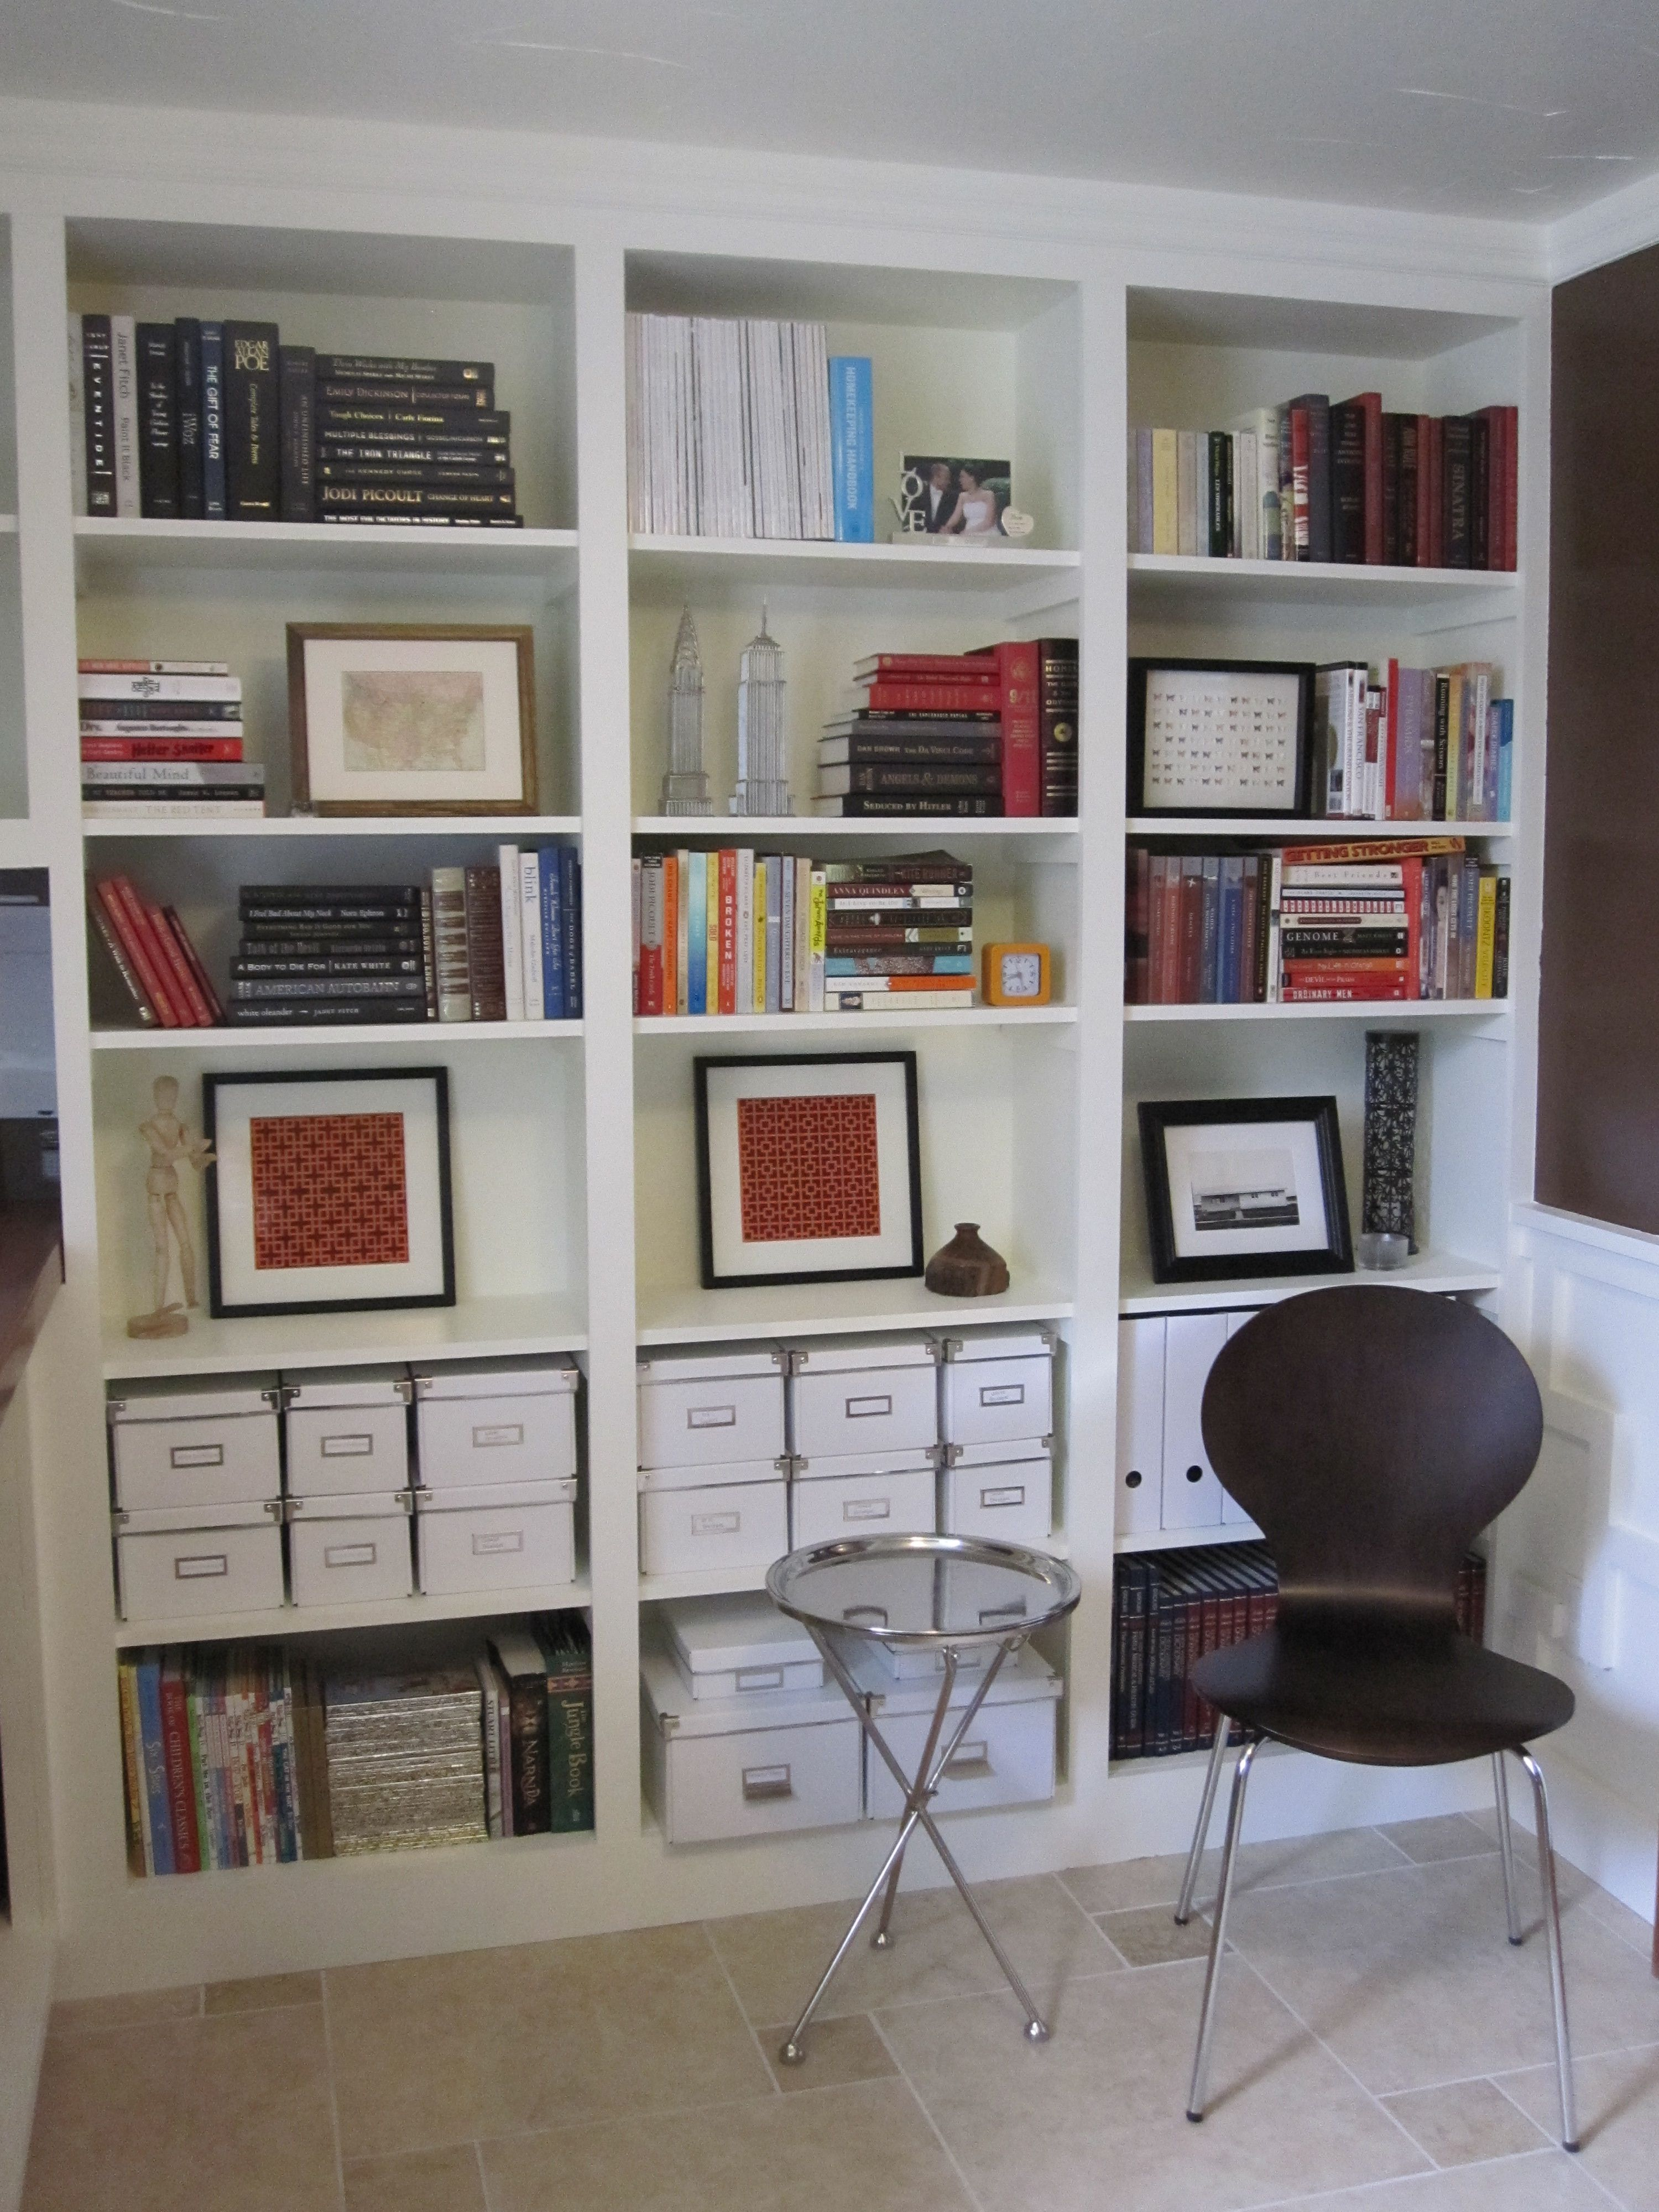 Office bookshelf decor - Bookshelves On Either Side Of The Desk With Doors That Cover Either The Bottom Or The